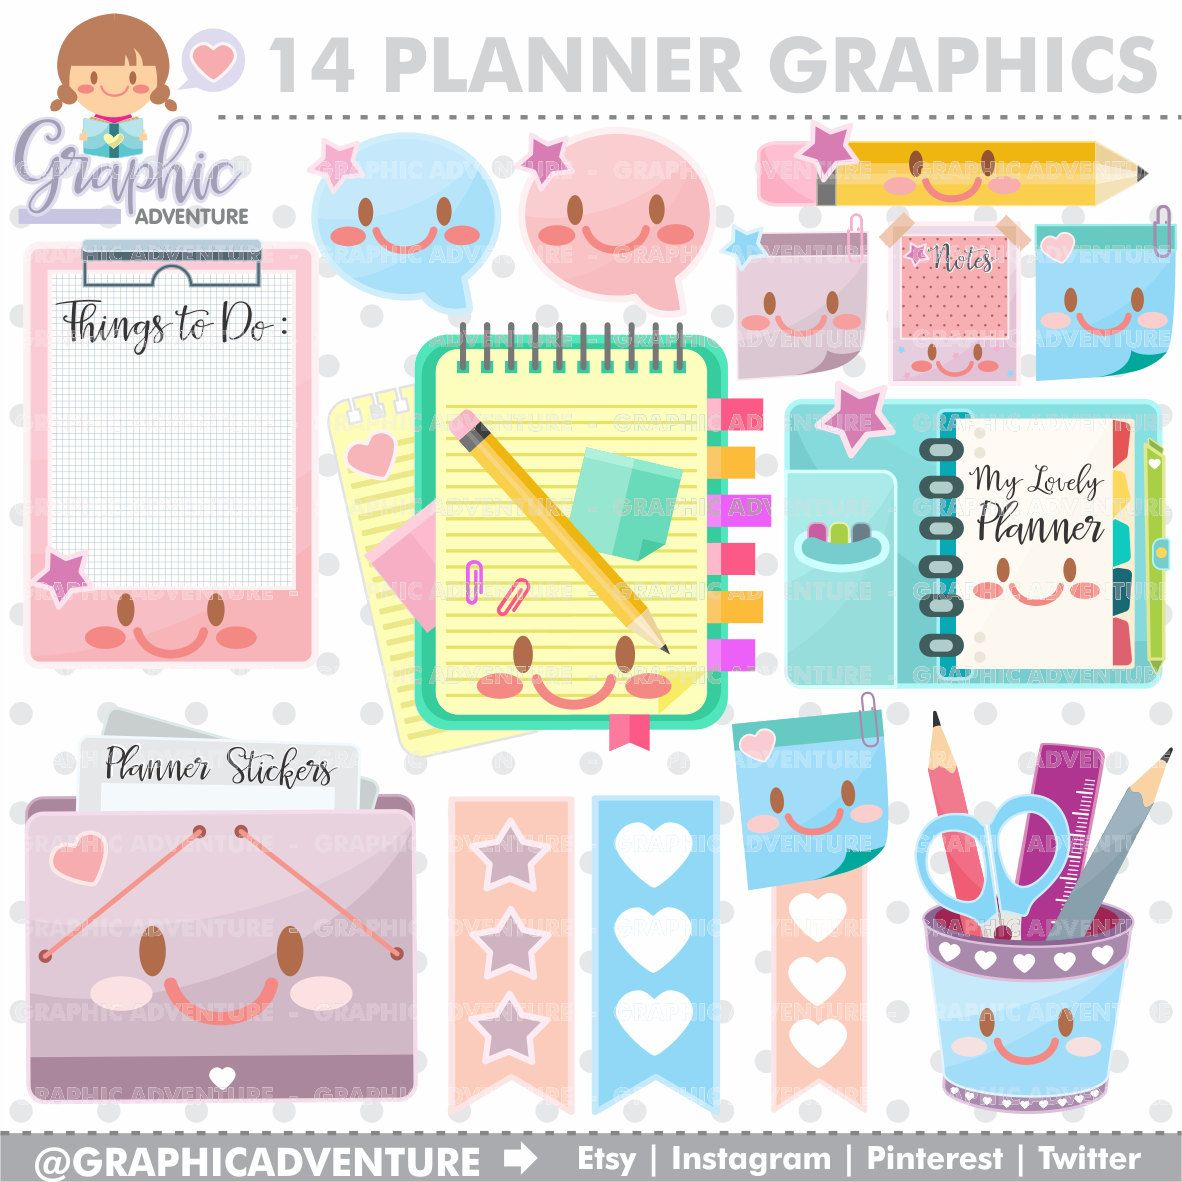 off graphics commercial. Planner clipart planner sticker